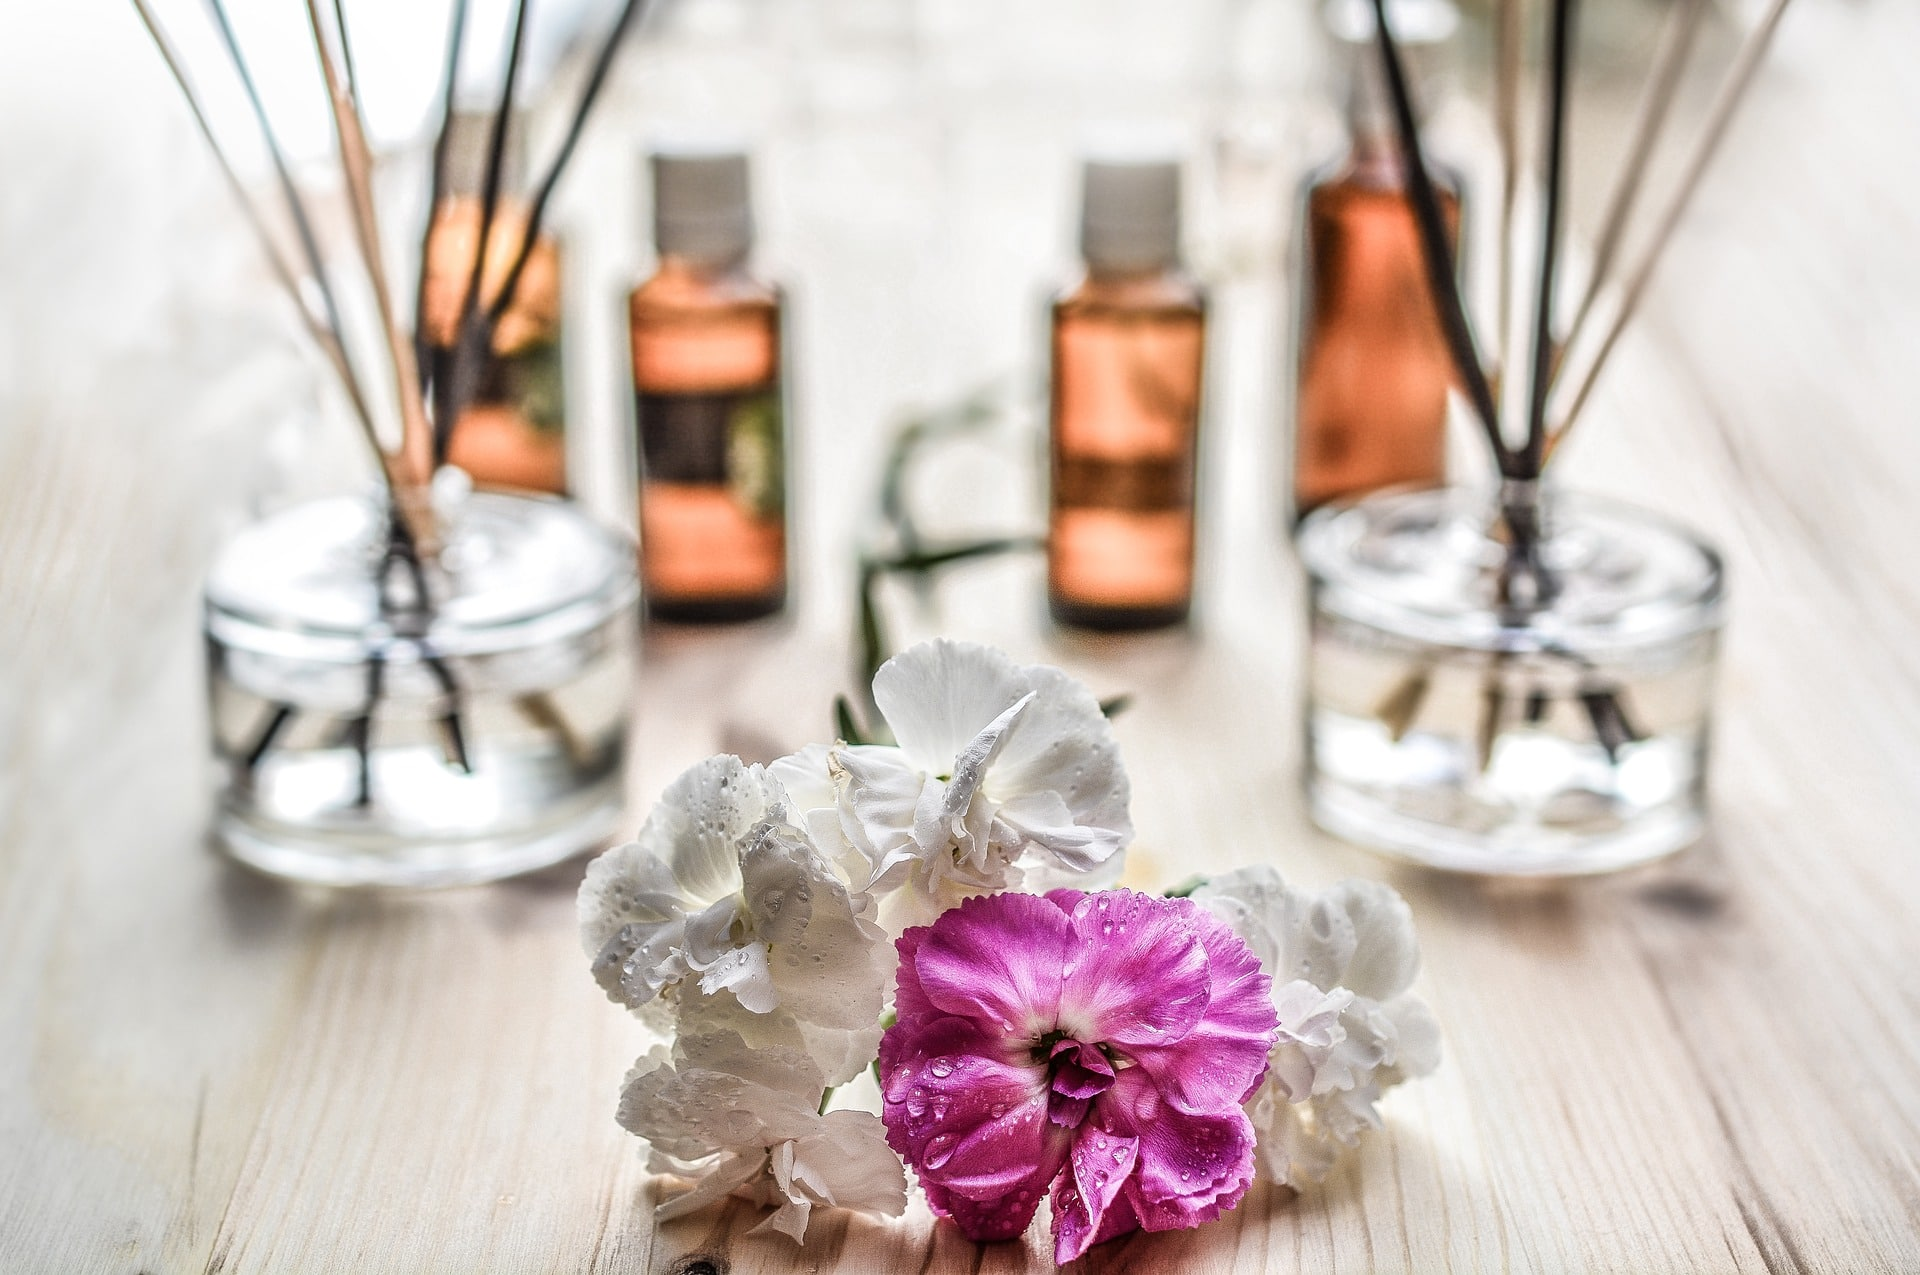 Photo of 11 Incredible Uses Of Essential Oils You Should Know